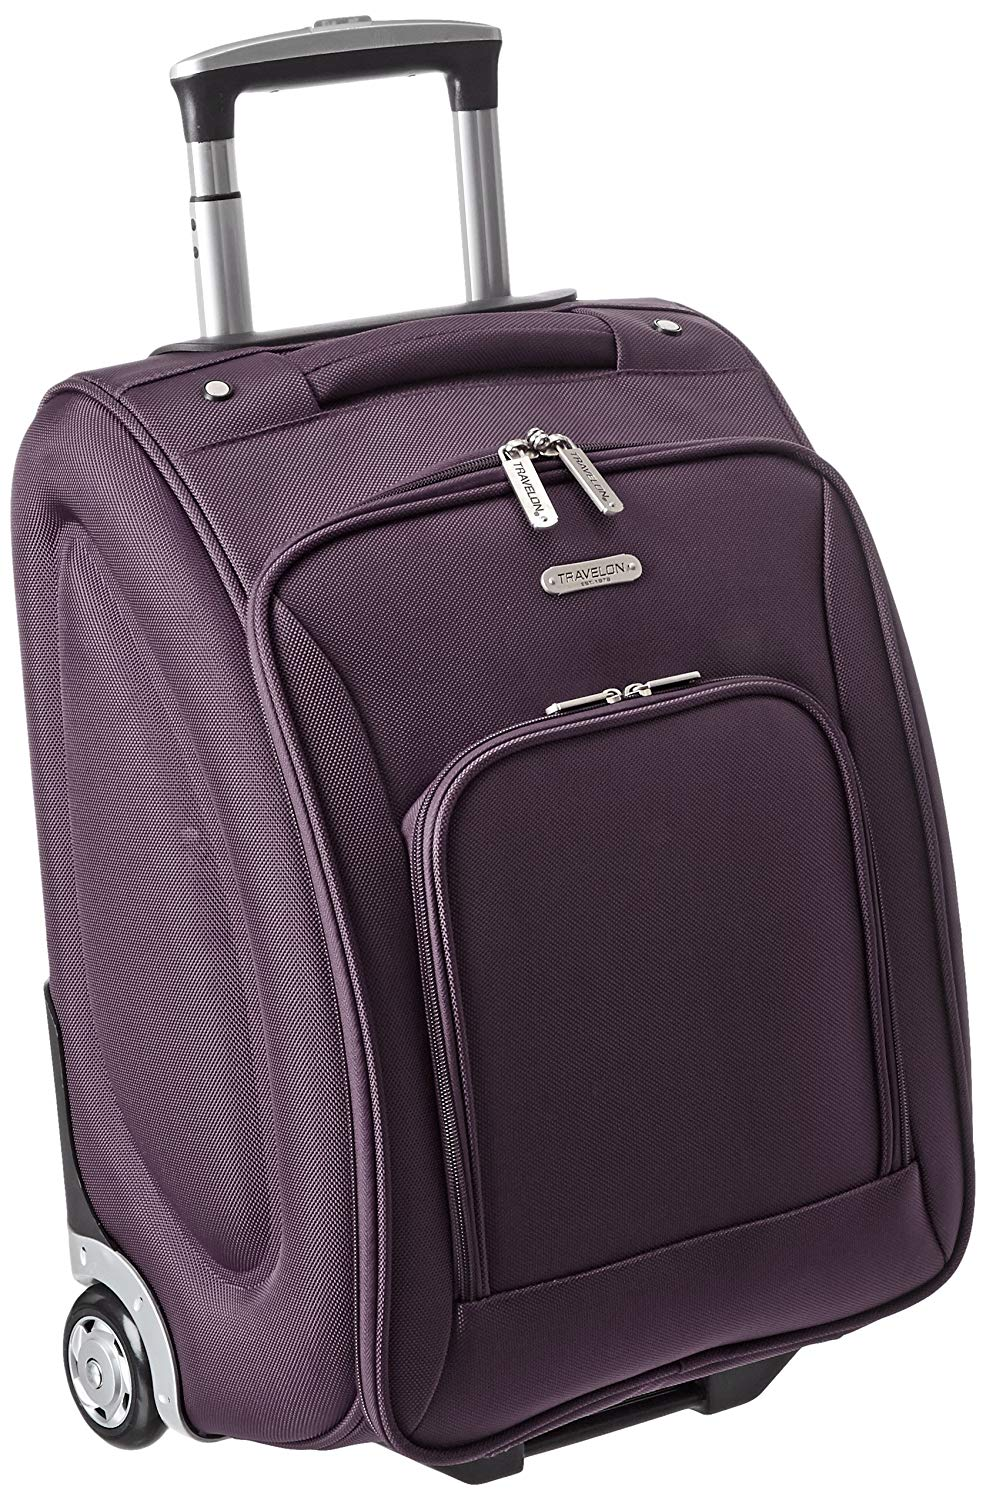 Travelon 18-inch Wheeled Underseat Bag, travelon, travelon bags, travelon purses, travelon handbags, travelonbags, travelonbags com, www travelonbags com, www travelon com, travelon backpack purse, travel on, travelon anti theft bags, teavelon, travelon leopard, travel safe bags, travelon brand, travelon bags melbourne, travel purse backpack, travel safe purse, travelon tote, travel caddy, secure travel bags, travelon anti theft bags australia, safety bag, secure travel purse, travelon anti theft purse, travel purse, travelon anti theft bags canada, travelon cell phone wallet, travelon makeup bag, travelon anti theft bags uk, travelon travel bags, travelon security bags, travelon products, travelon bags qvc, travelon travel wallet, travel caddy inc, travelon backpack canada, travelon store locator, travelon packable travel bag, travelon shoulder bag, travelon nl, safety purse, travelon tote bags, at travel bags, travel purses and bags, travelon uk, travelon square pleated crossbody, travelon anti theft convertible hobo, travelon philippines, travelon city messenger bag, travelon quilted bag, ebags travelon, travelon carry on, travelon wheeled underseat carry on with back up bag, wheeled underseat carry on, travelon underseat, travelon underseat carry on, travelon wheeled underseat carry on, travelon underseat wheeled carry on luggage, travelon underseat carry on bag, travelon luggage wheeled underseat carry on, travelon ballistic nylon 14 inch wheeled carry on bag, travelon luggage 14 in wheeled carry on, travelon 14 wheeled carry on, under seat luggage, underseat carry on, underseat bag, underseat carry on luggage, under the seat luggage with wheels, under the seat carry on bag, rolling underseat bag, under seat rolling luggage, wheeled underseat bag, under seat carry on luggage with wheels, rolling underseat tote, small carry on luggage, travelon 18 inch wheeled underseat bag, travelon 18 inch wheeled underseat carry on bag